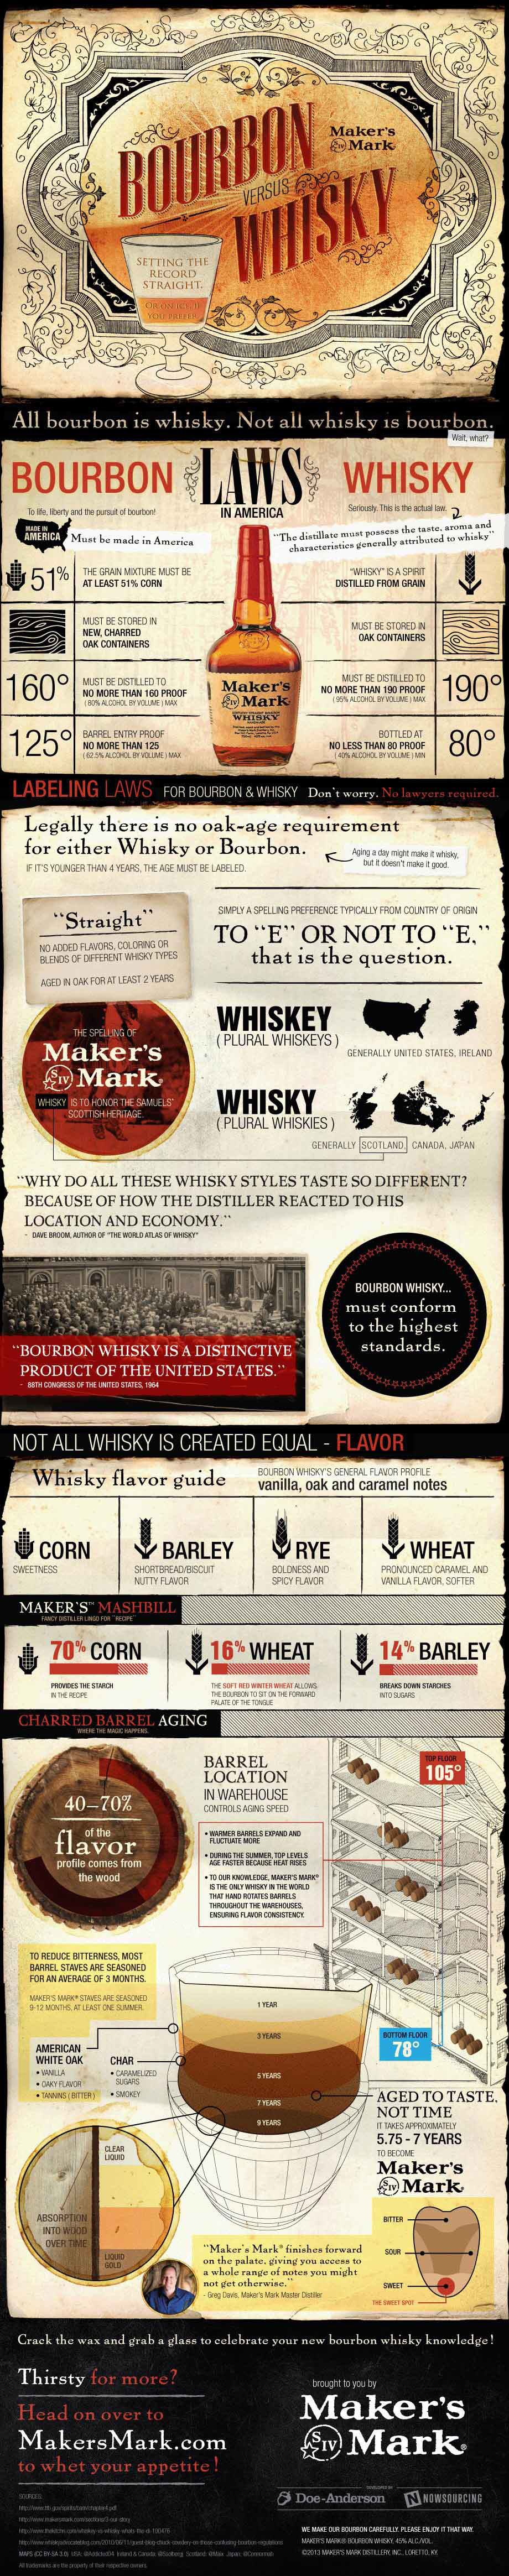 Bourbon Vs Whisky